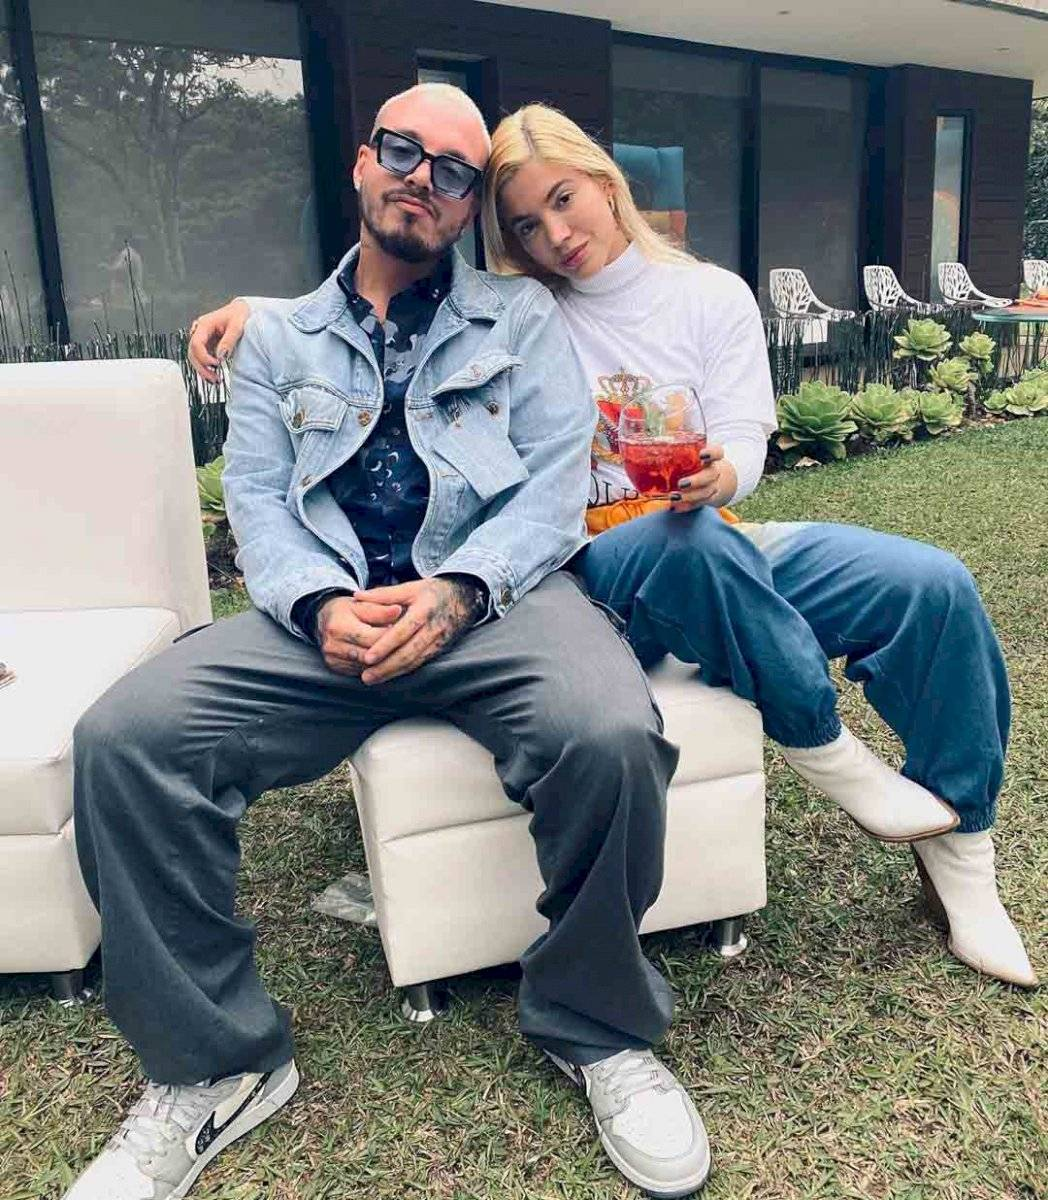 ¡Bella! La hermana de J Balvin, de doctora a influencer